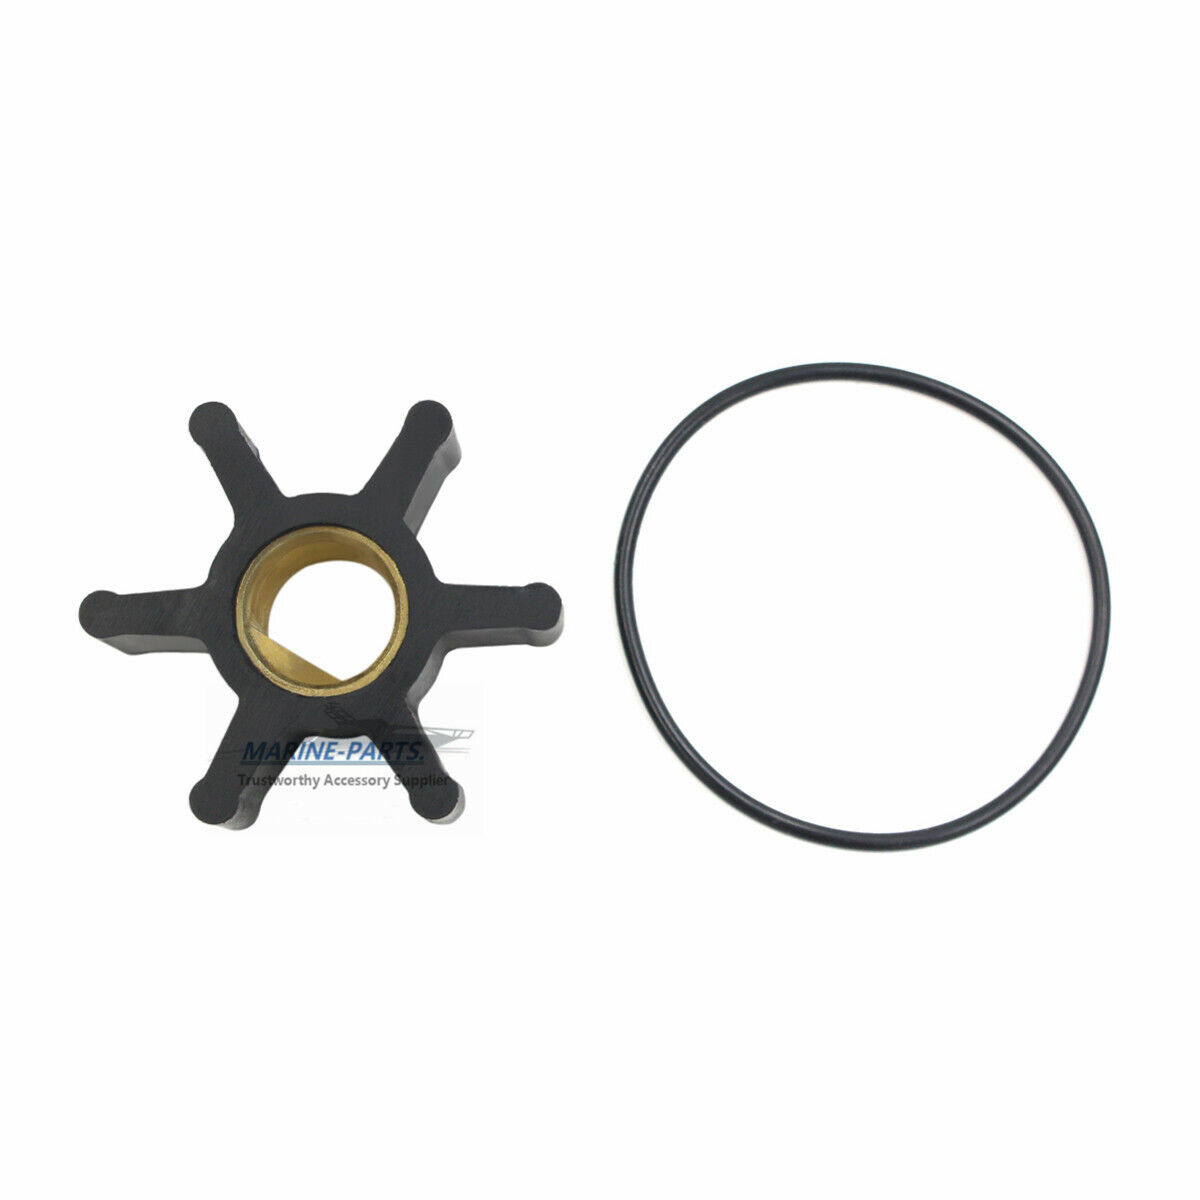 MARINE GENERATOR IMPELLER KIT Replaces Onan 0132-0415 G8002 G8002-01